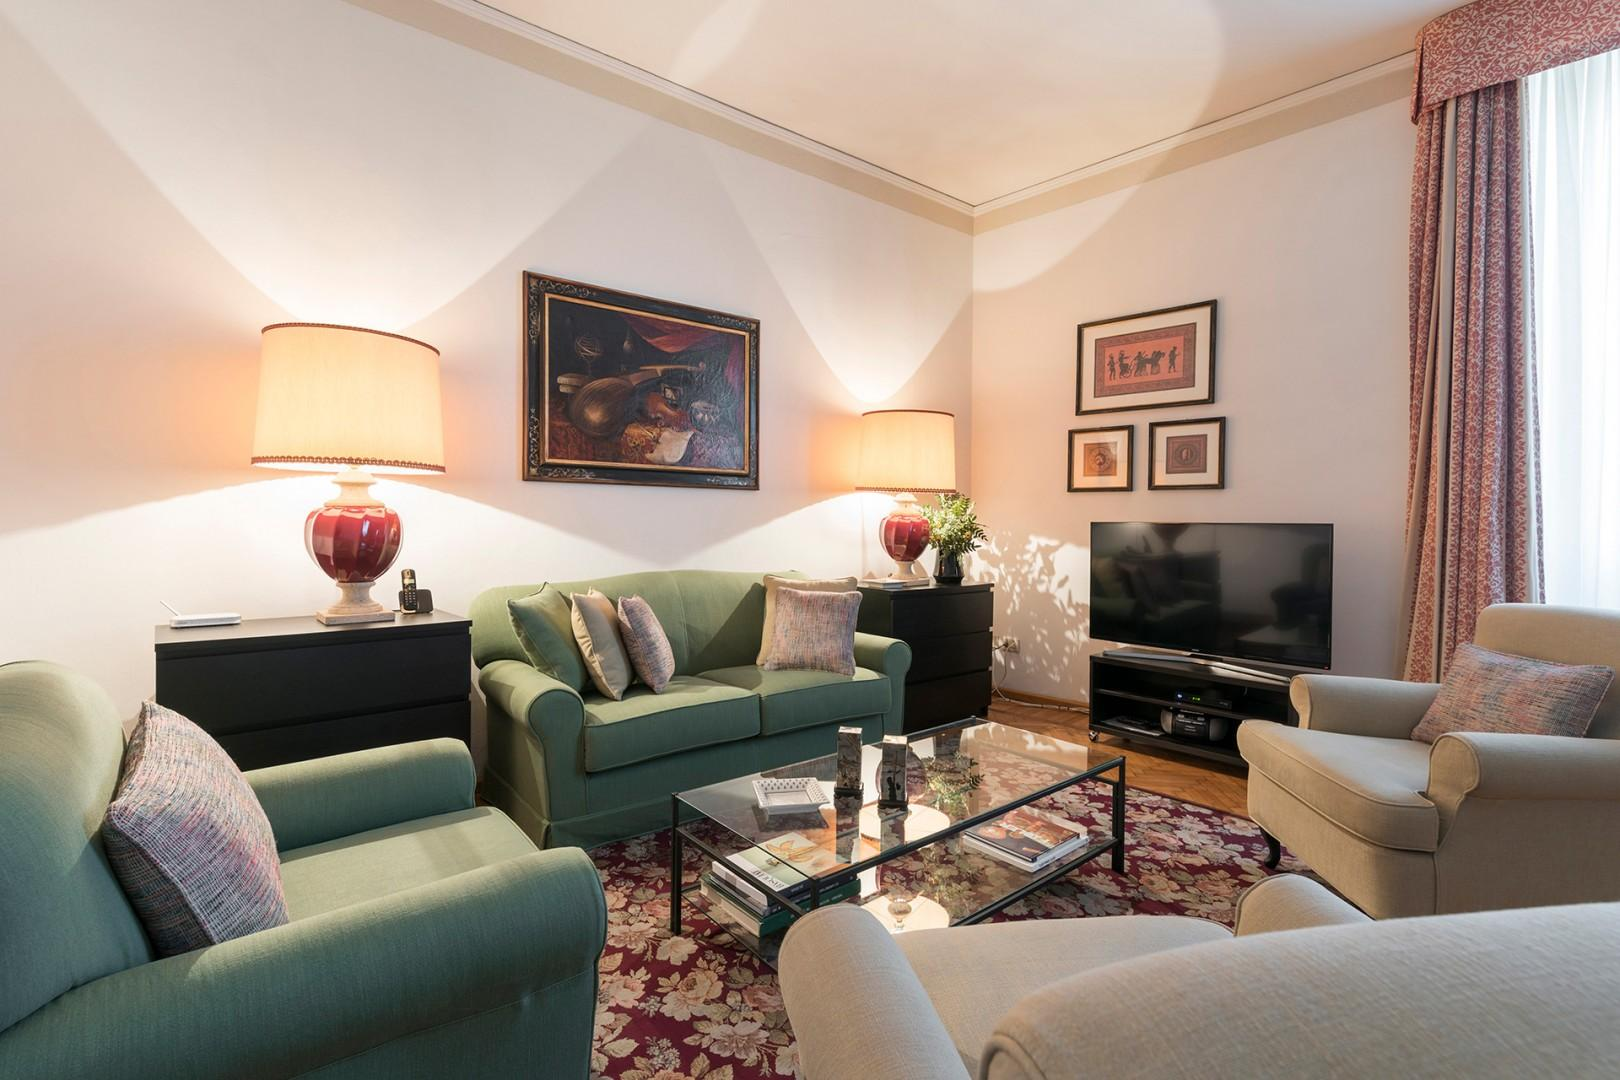 Comfortable seating with flat screen TV which receives several English language news channels.